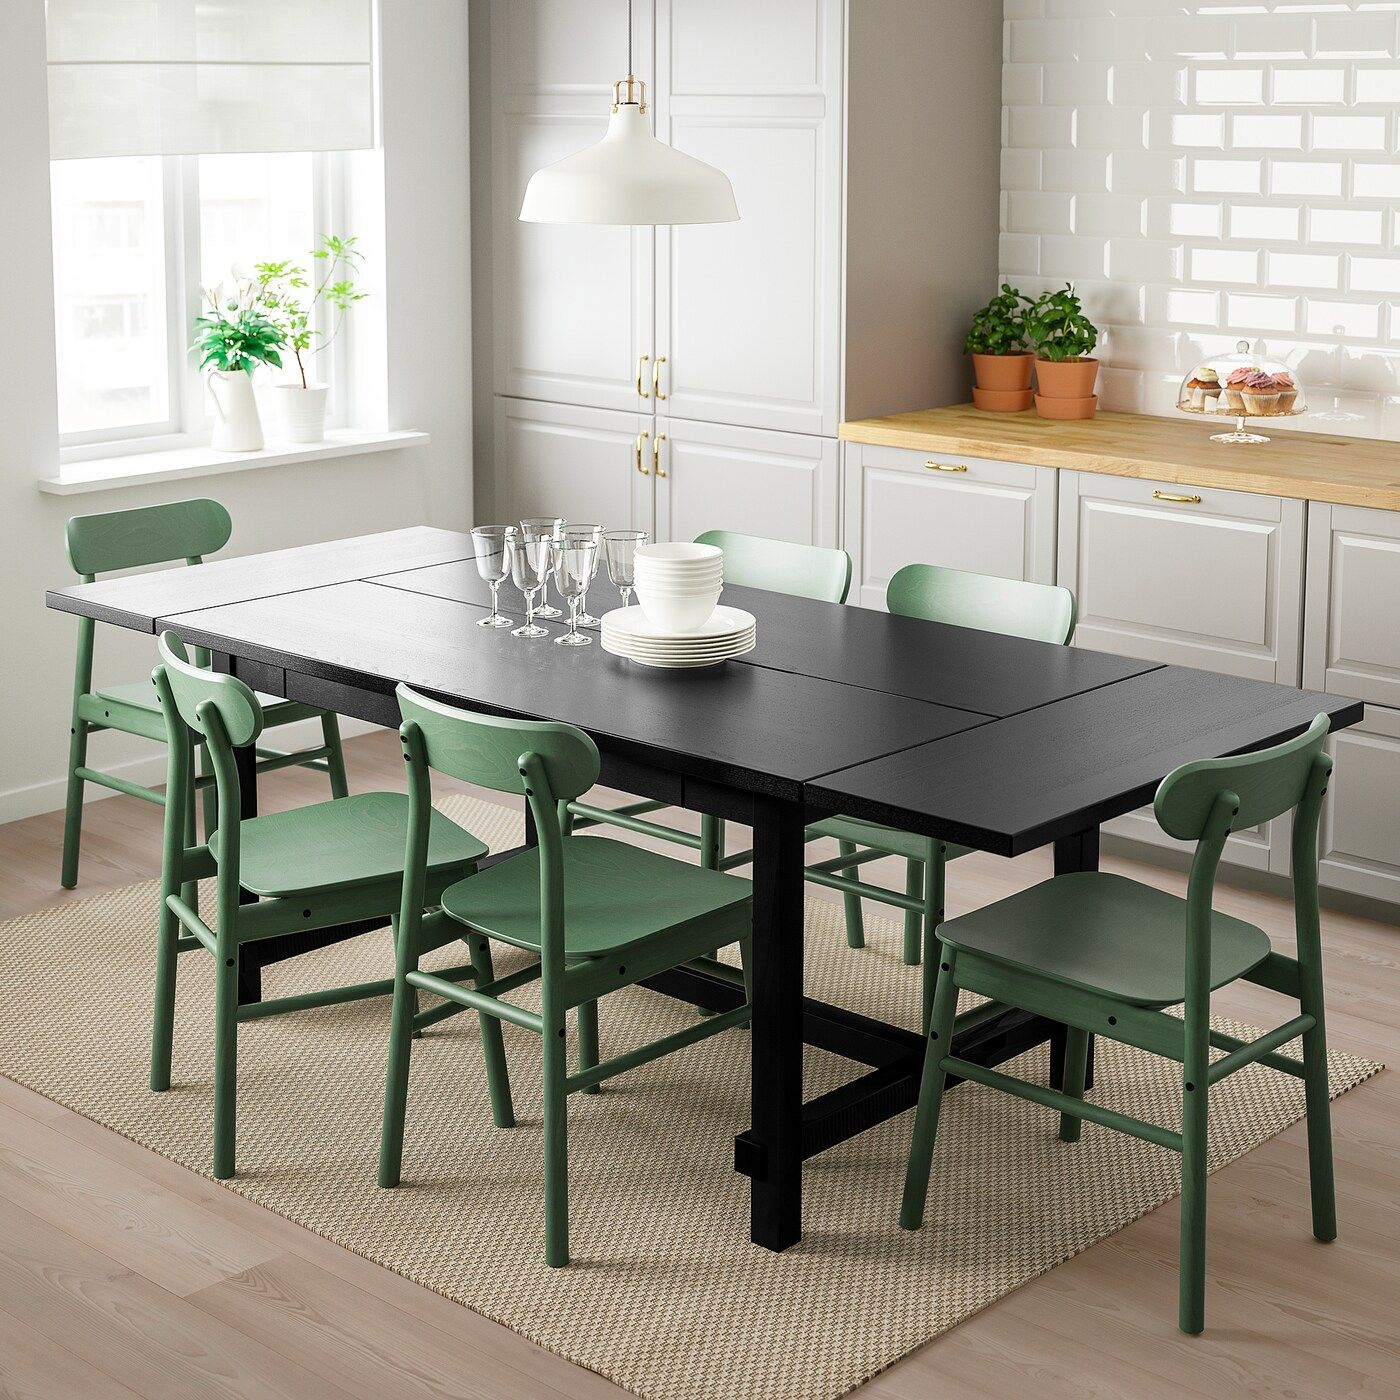 IKEA NORDVIKEN / RONNINGE Black, Green Table and 4 chairs